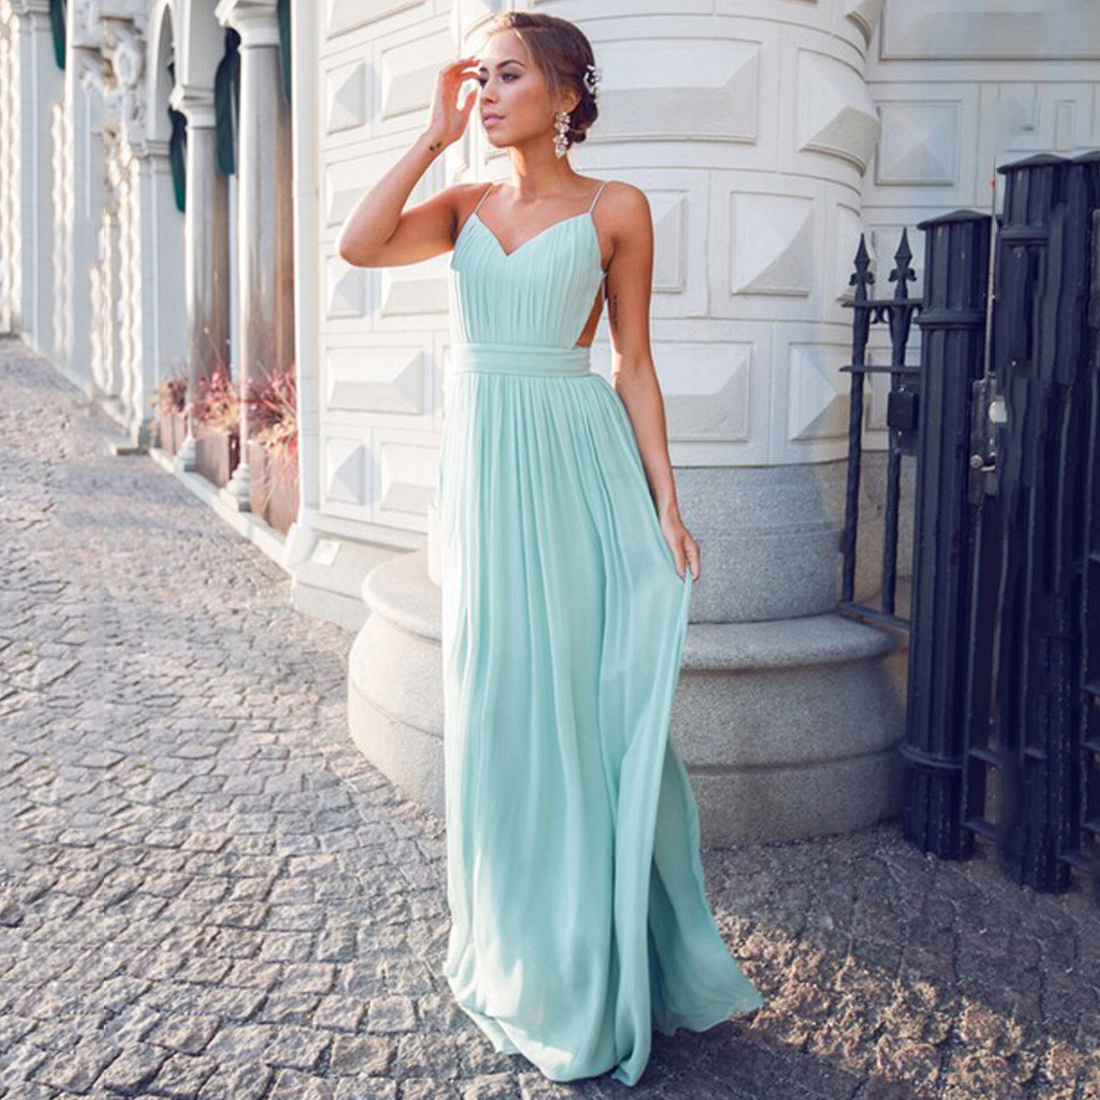 Spaghetti Straps Open Back Chiffon Prom Dress, Light Teal A-line ...